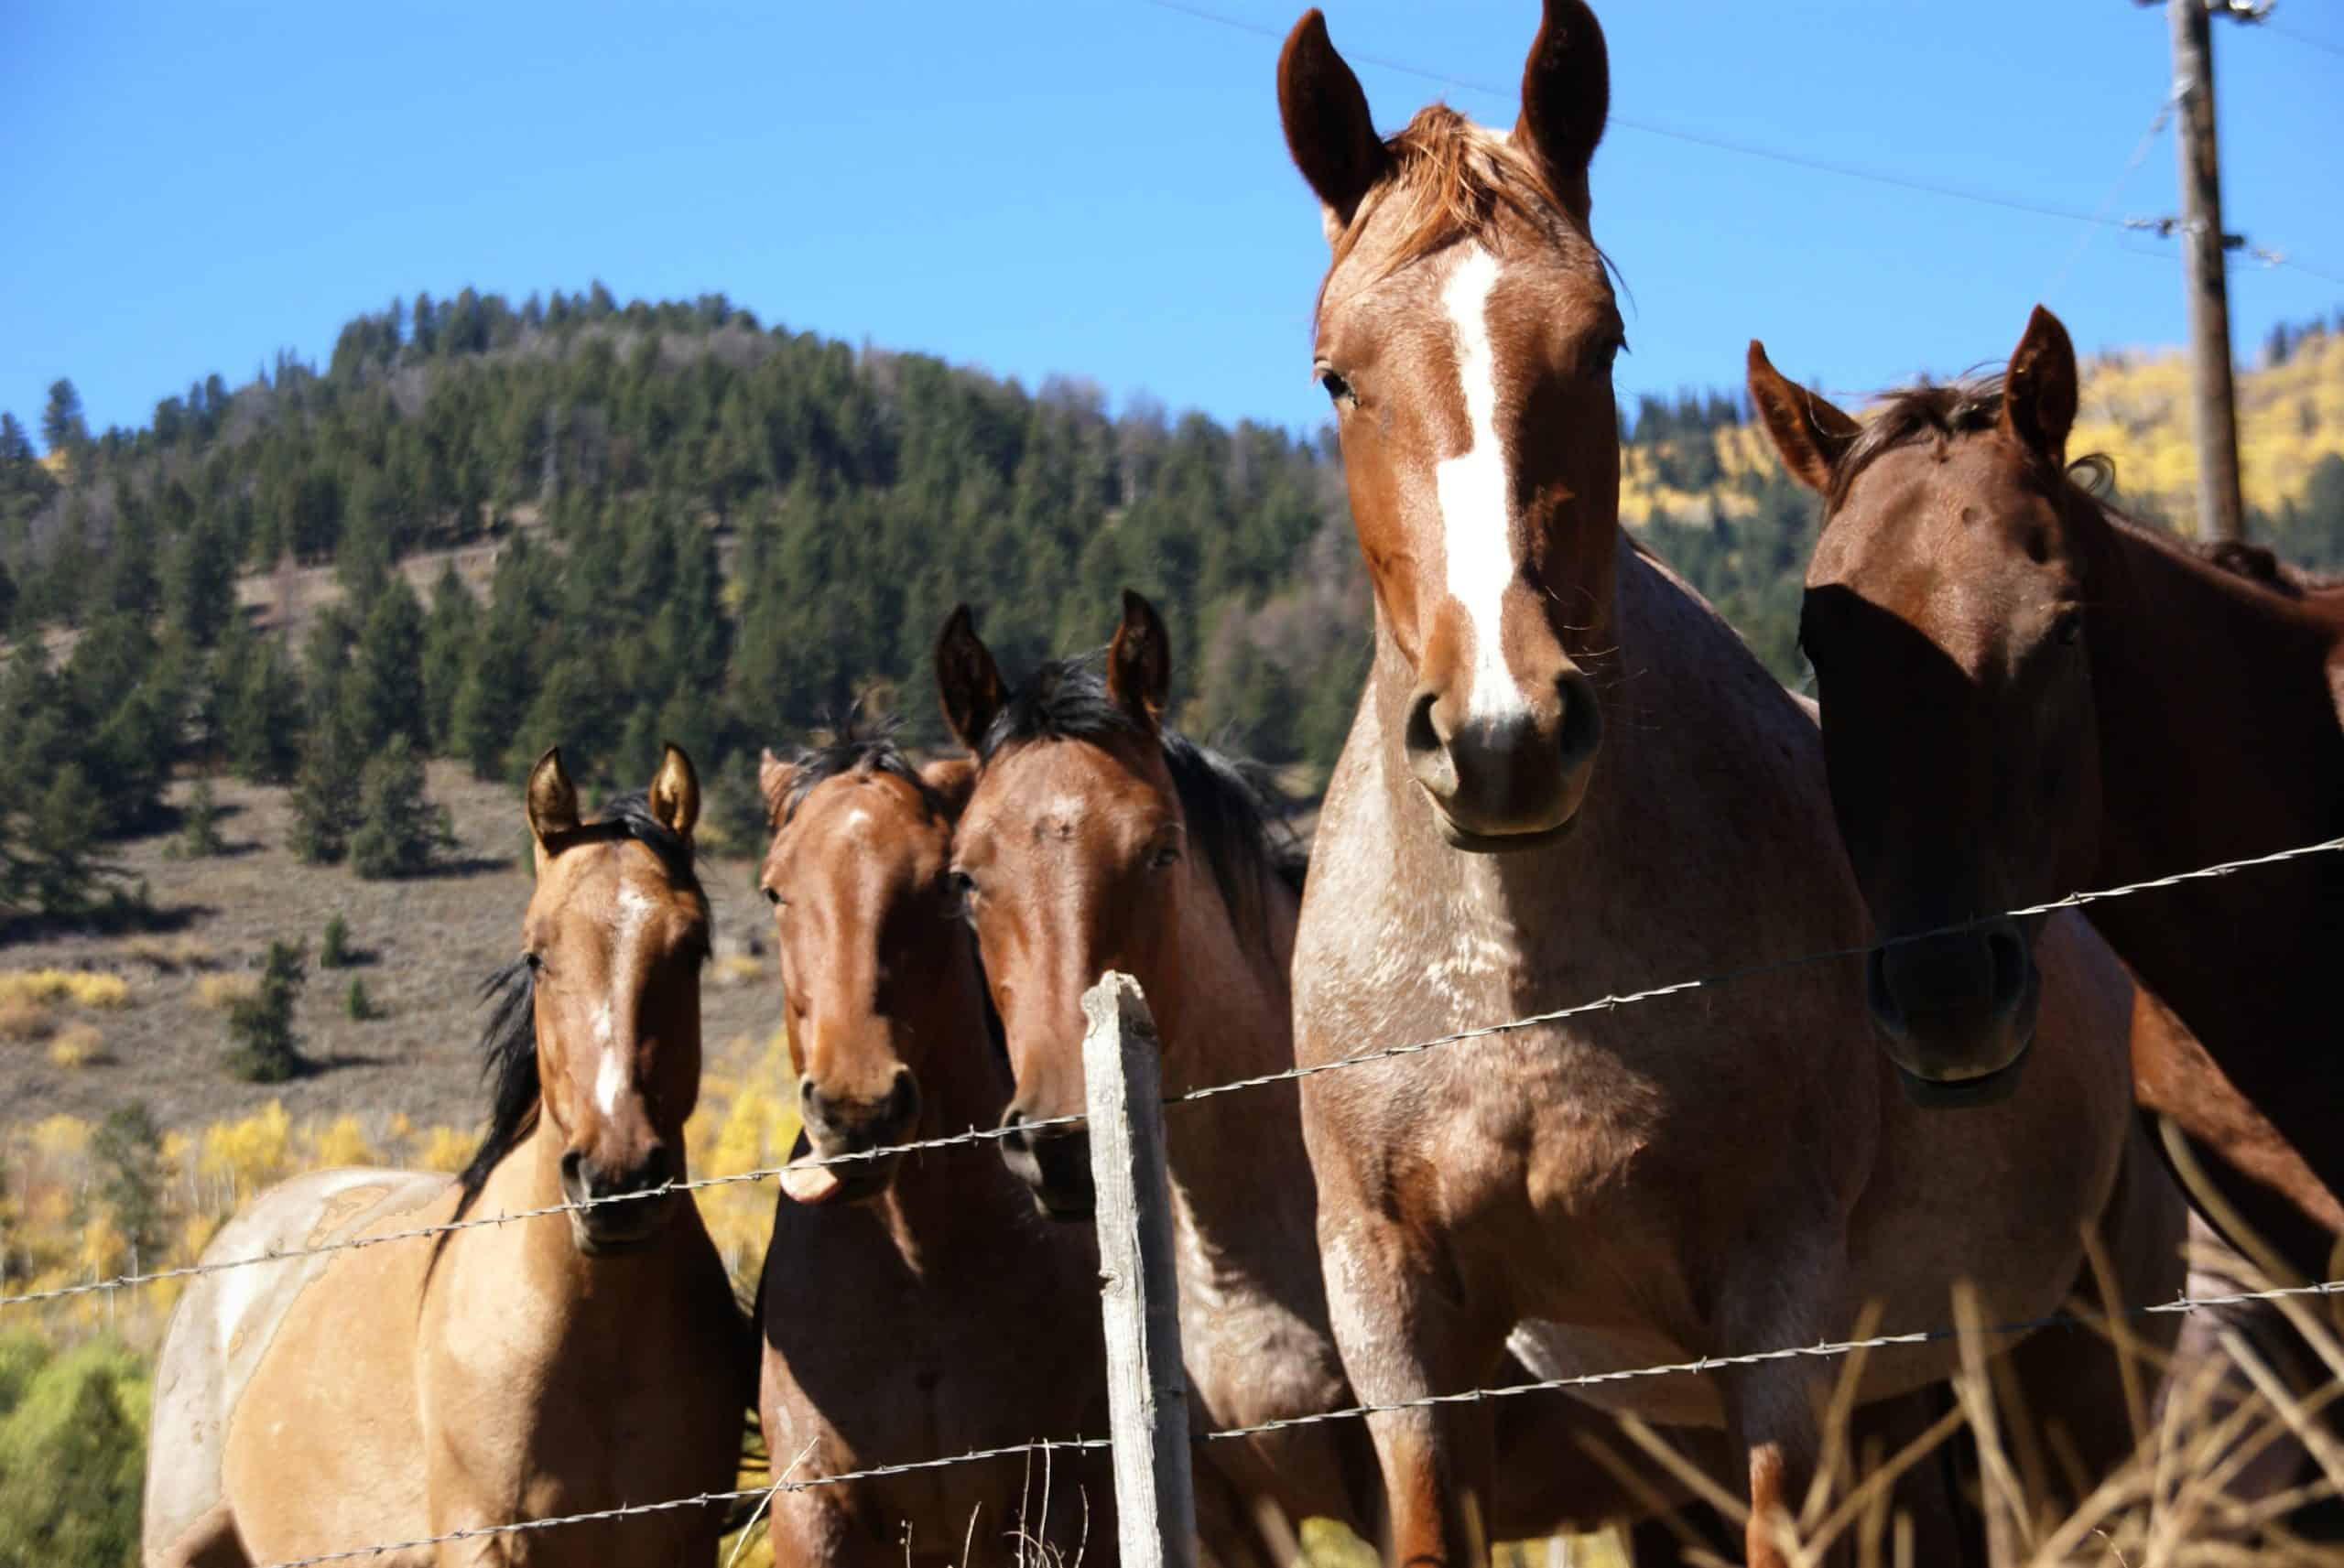 fun facts about horses image 2